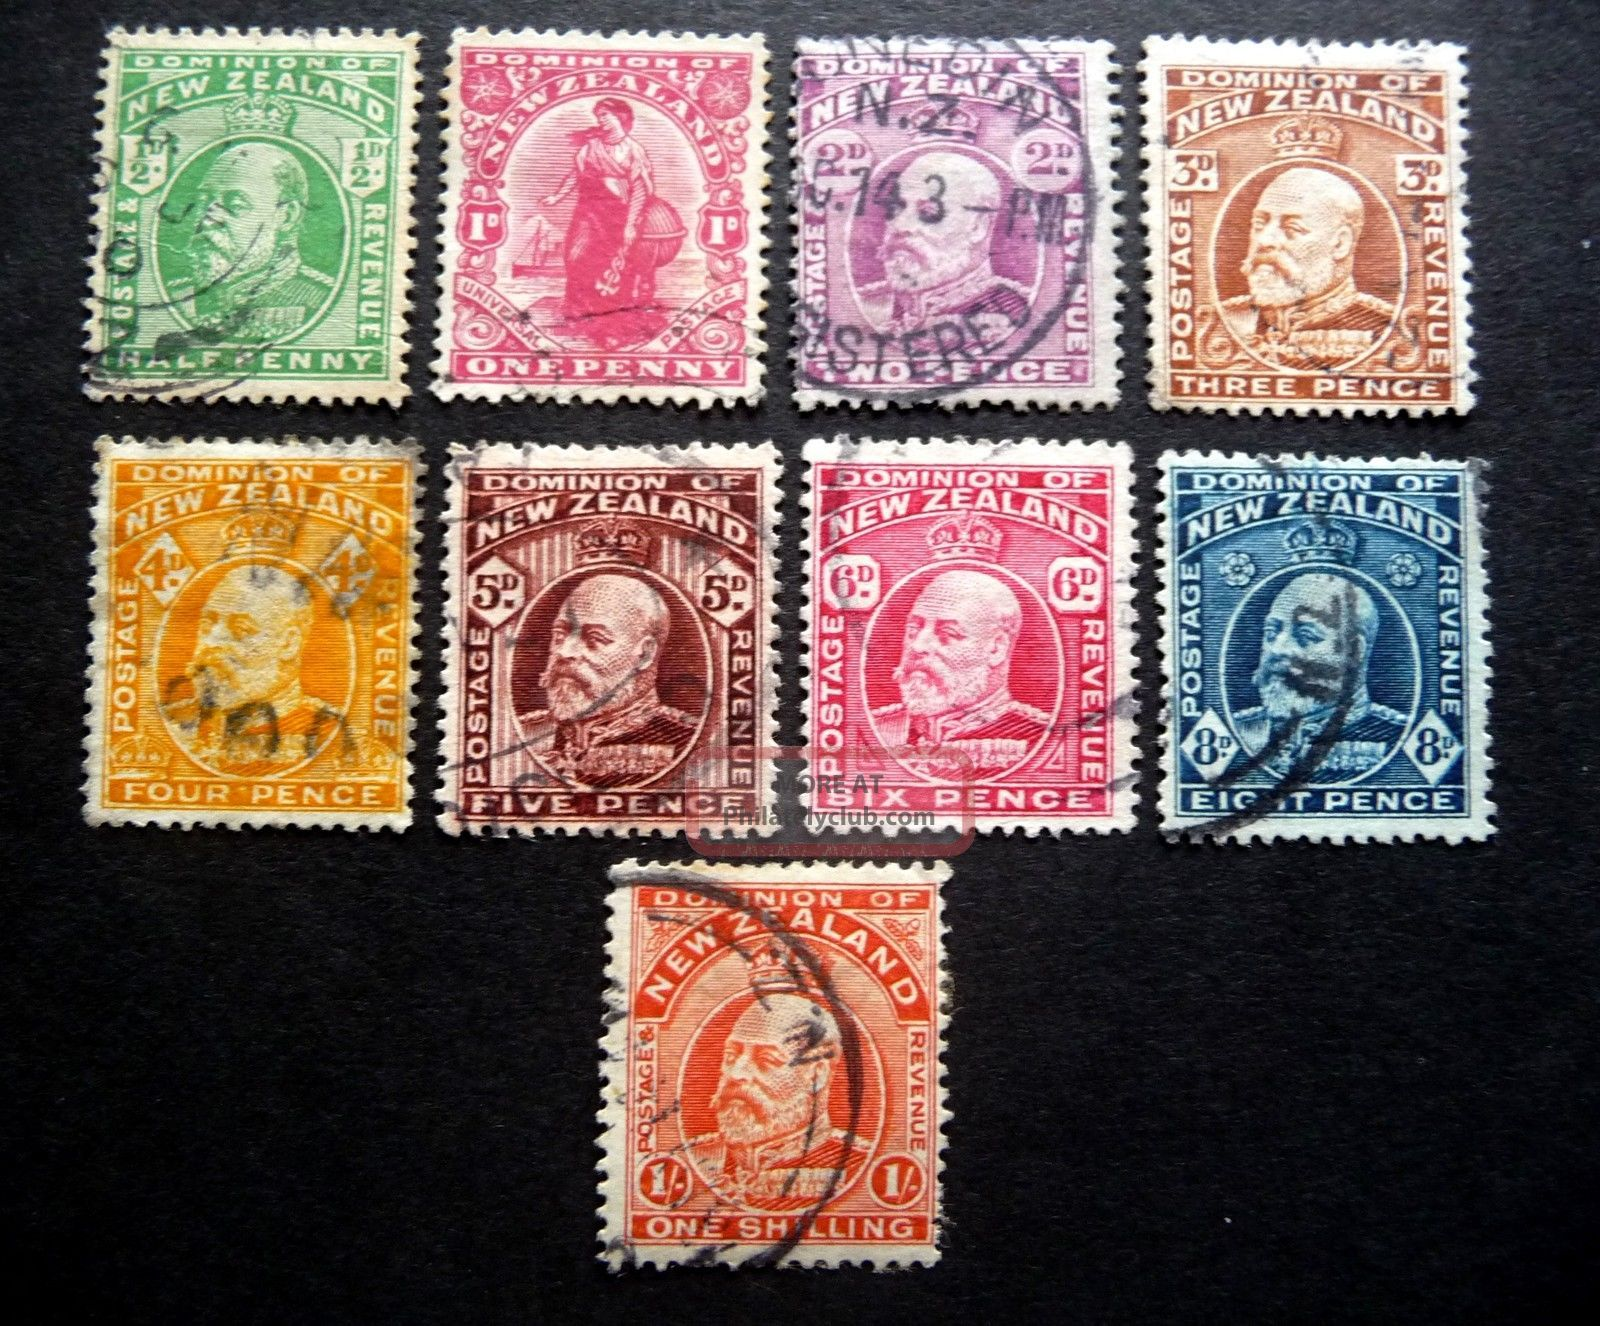 Zealand Kedvii 1909 Definitives As Seen Australia & Oceania photo